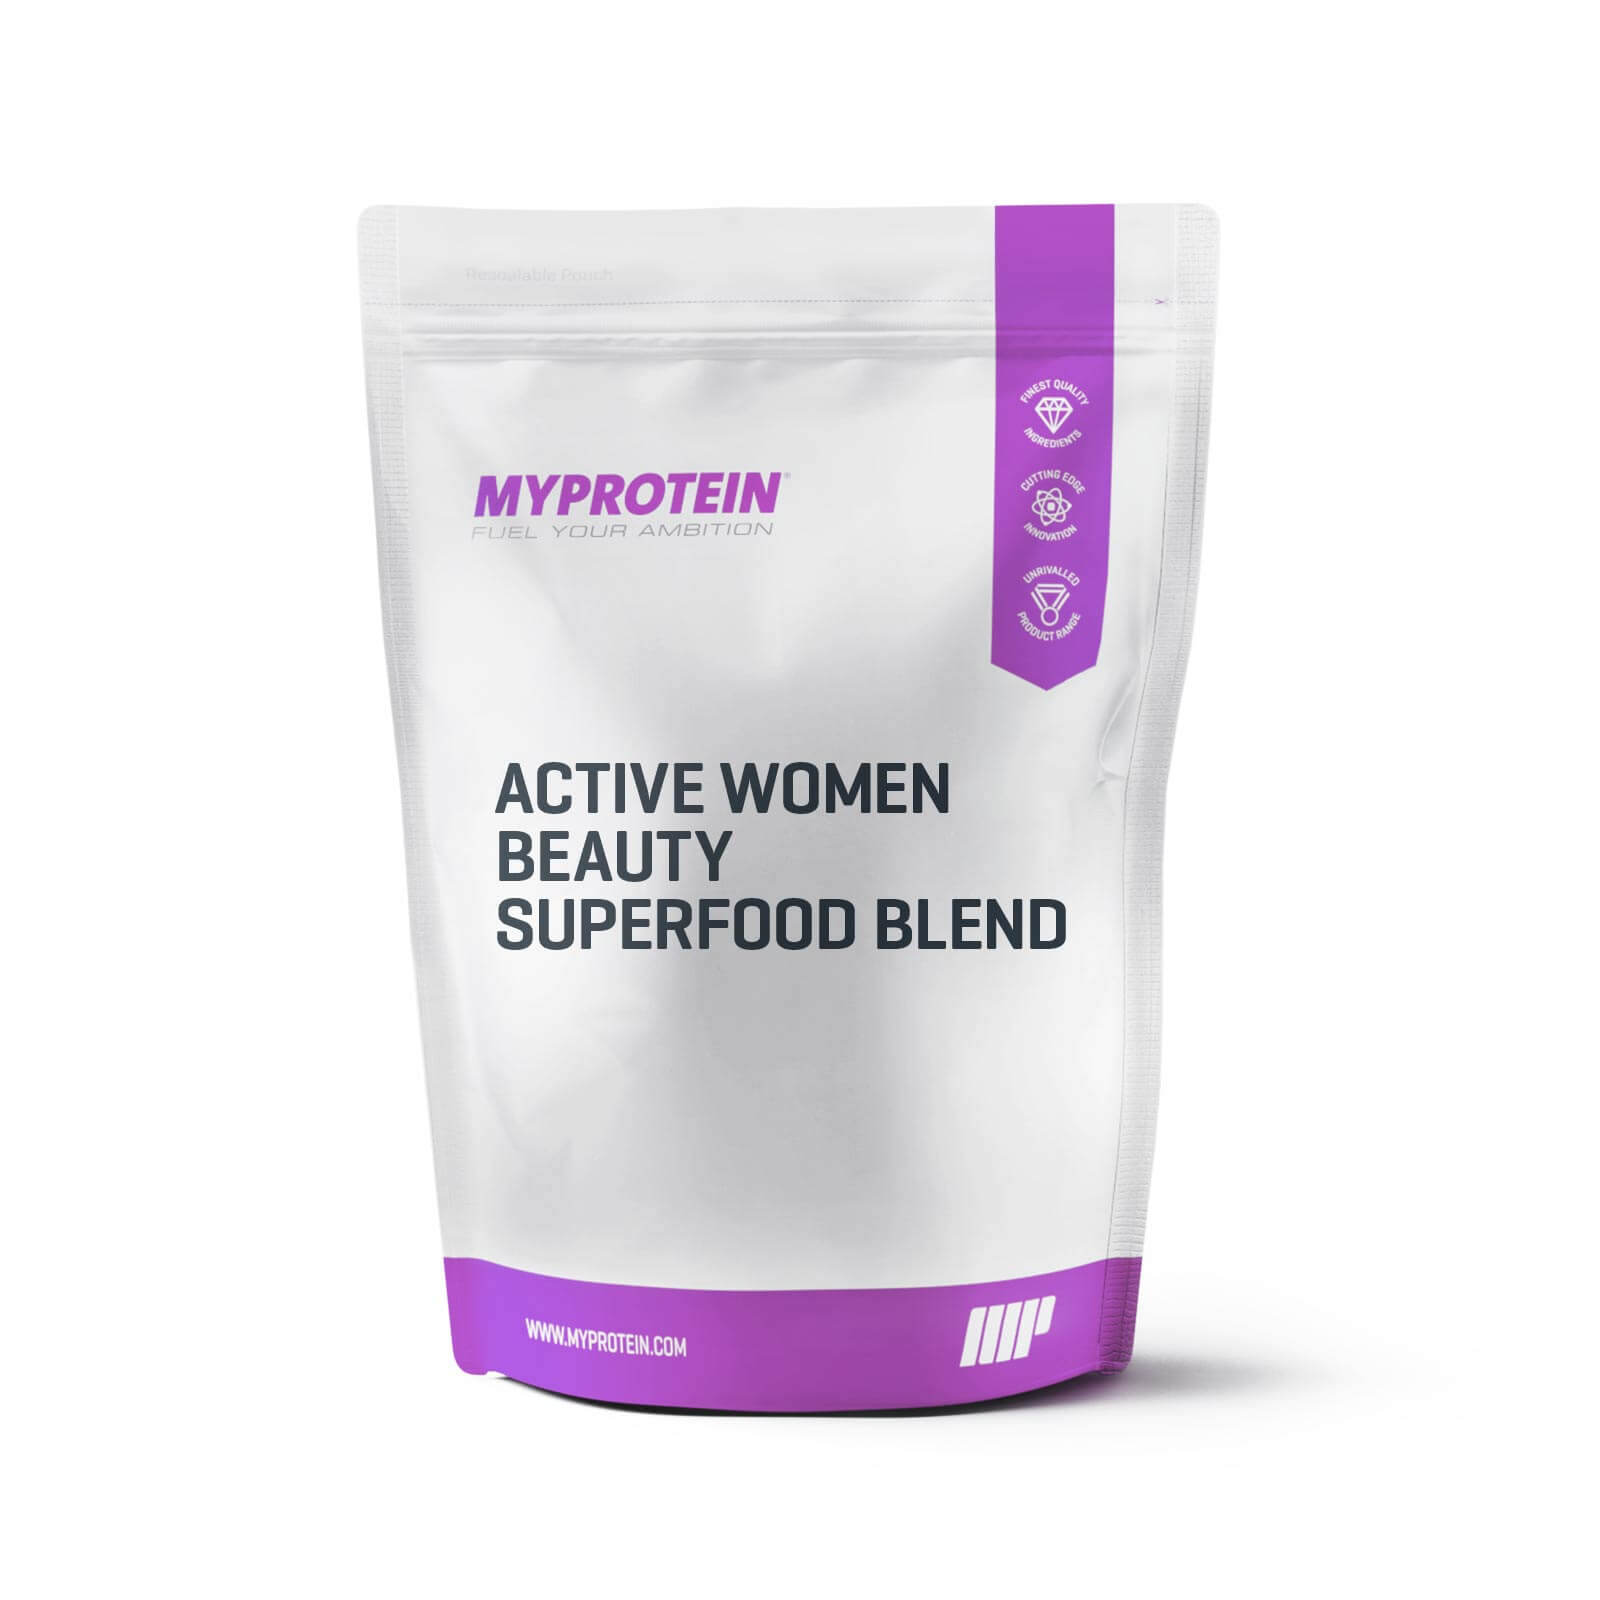 Active Women Beauty Superfood Blend - Vanilla, Acai & Maqui Berry - 500g